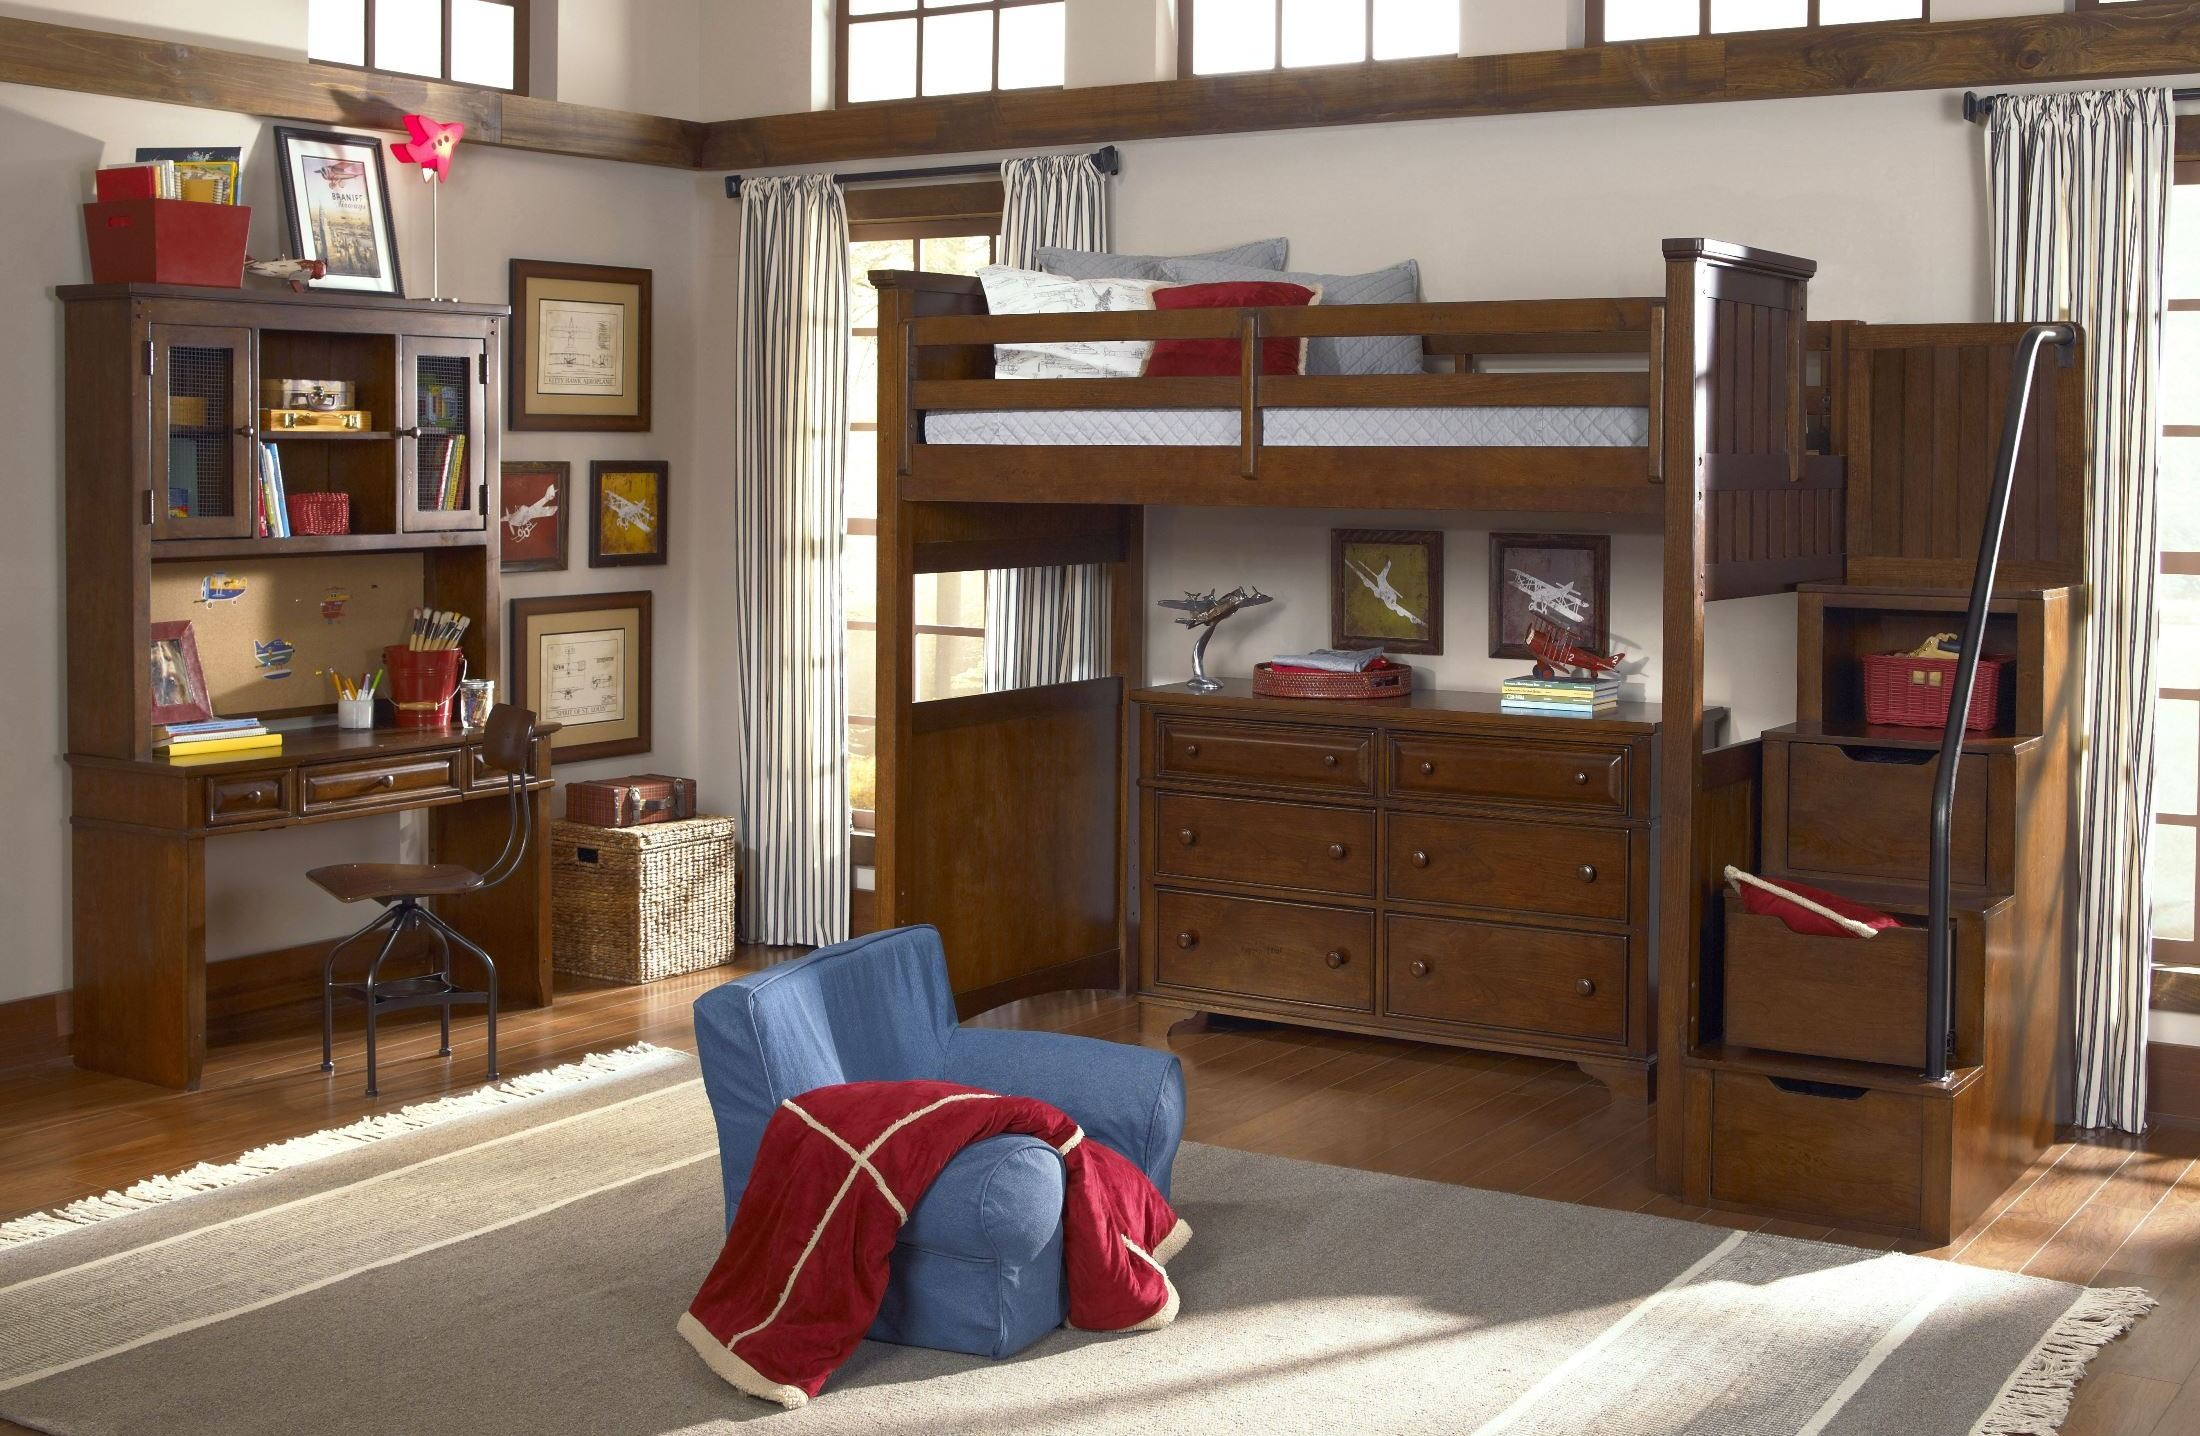 Dawsons ridge youth size open loft storage steps bedroom - Youth bedroom furniture with storage ...